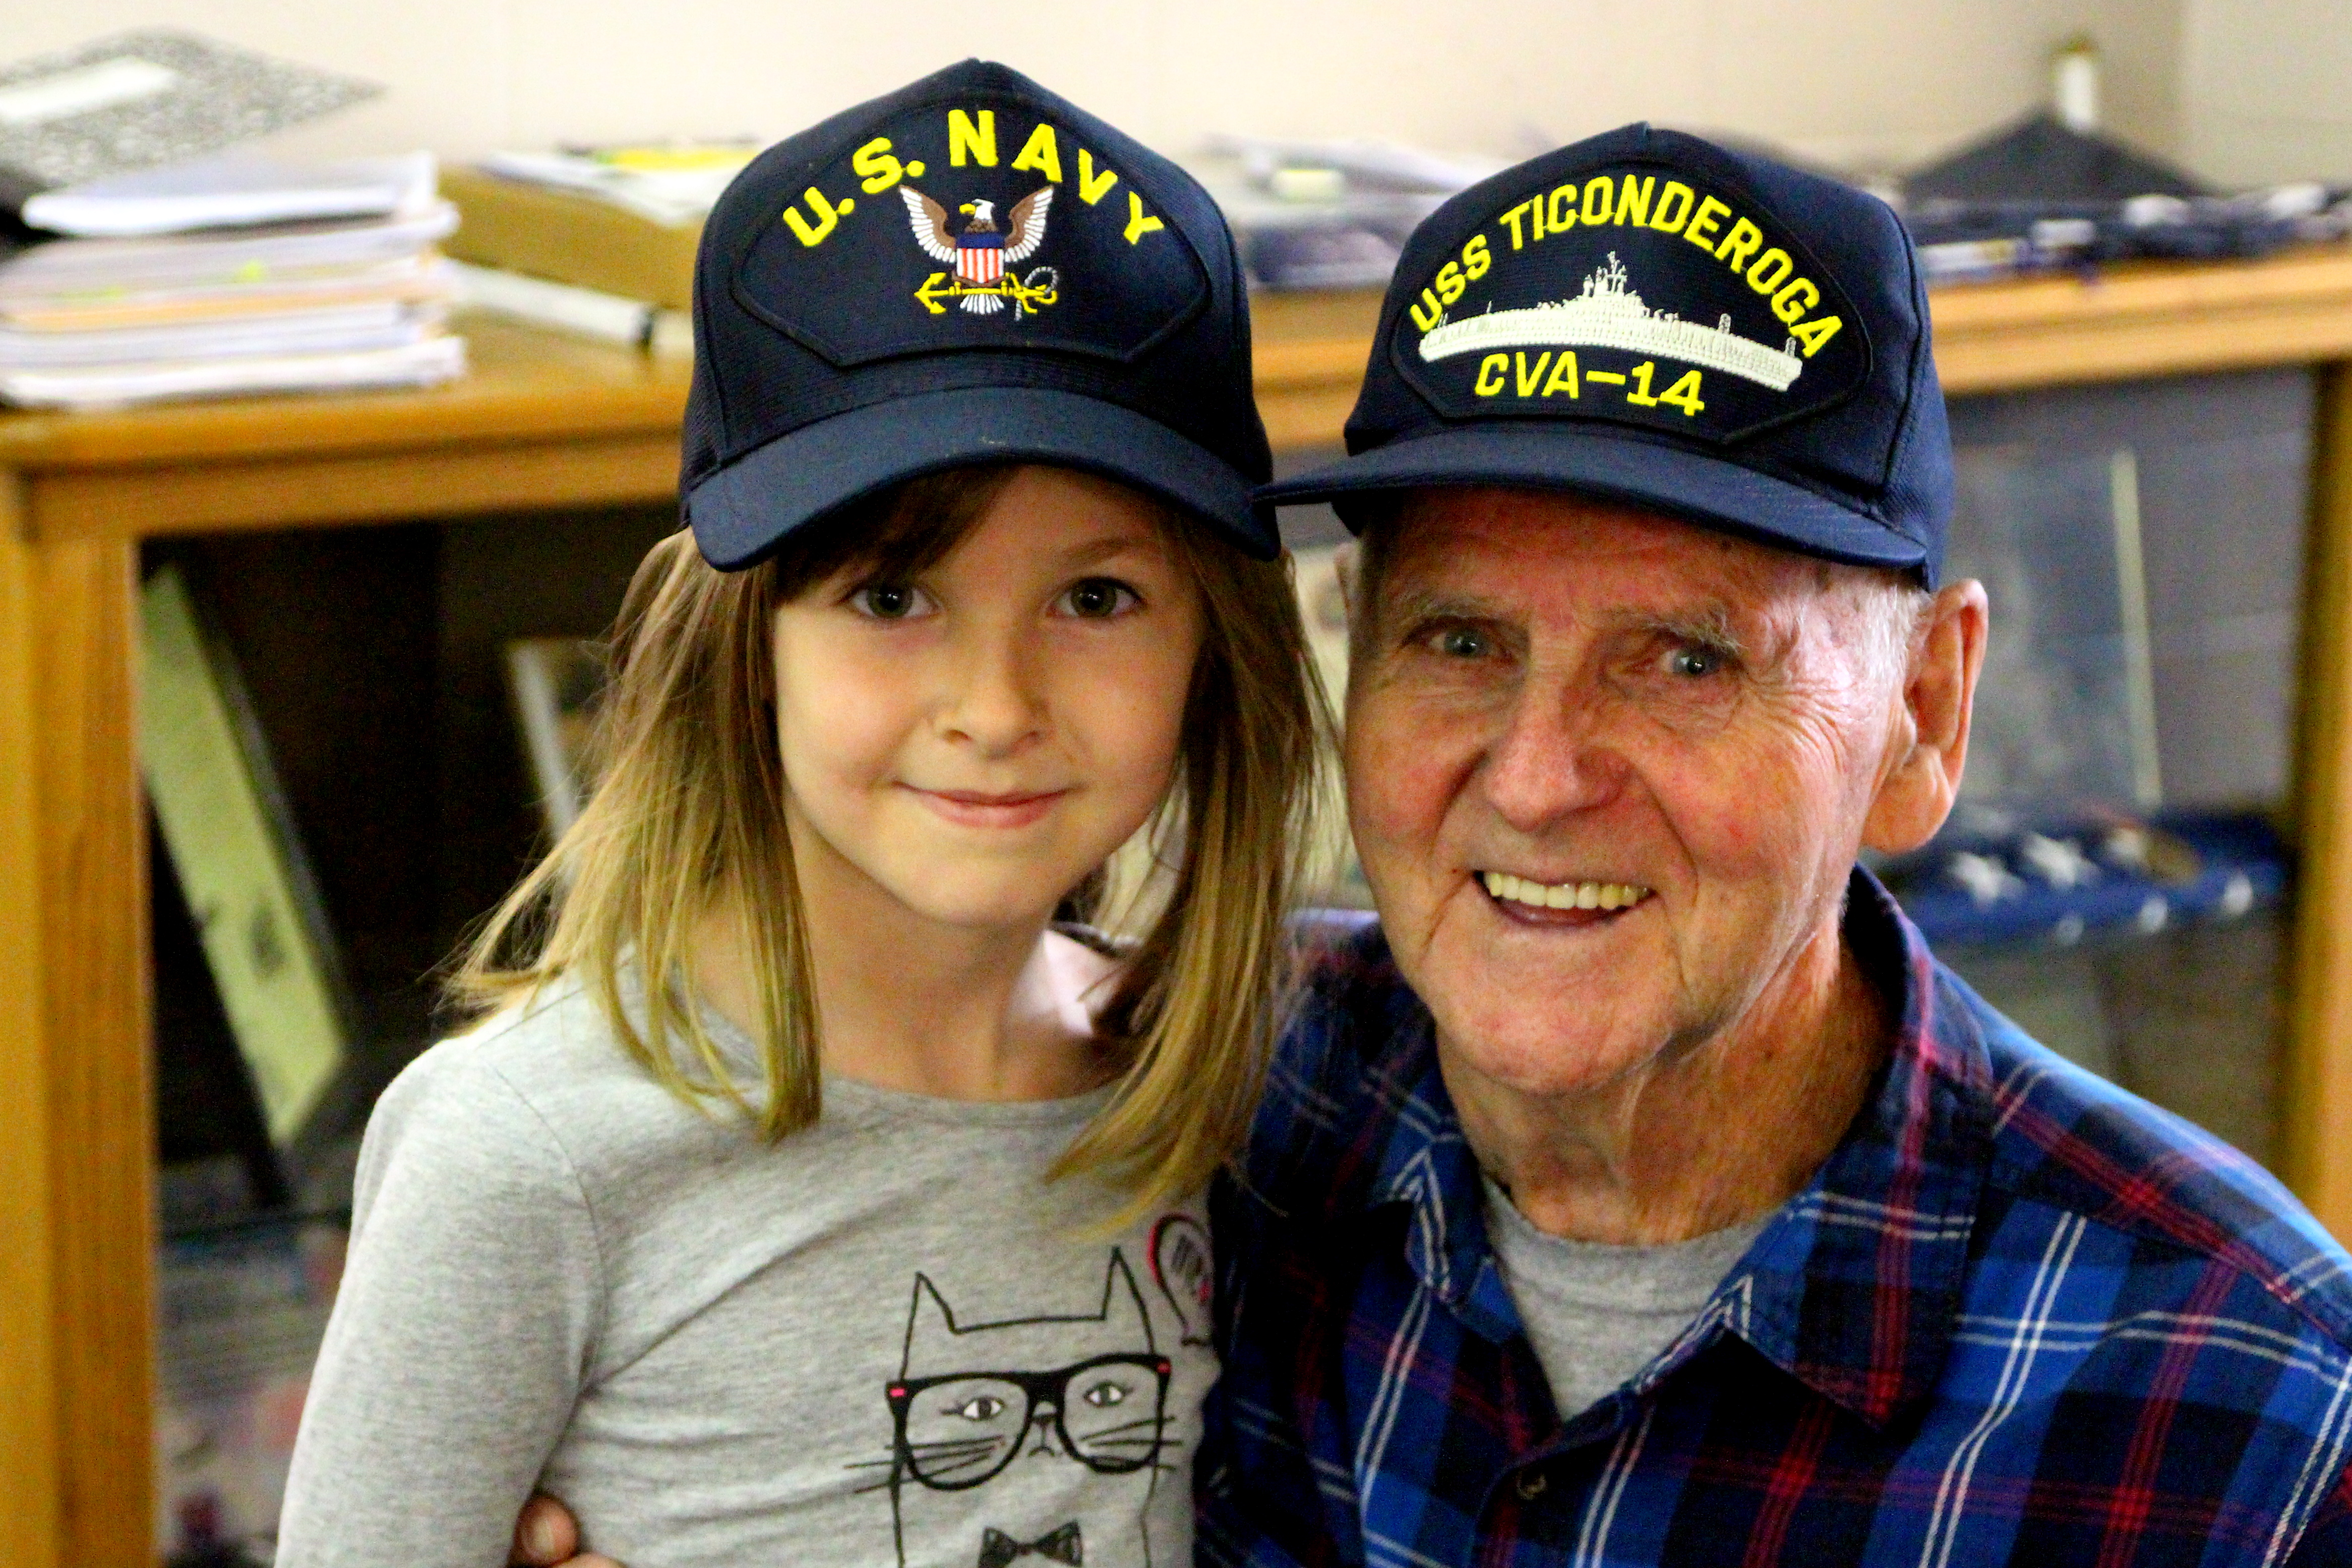 Belinda Rivard, a second grade student at Margaret Chase Smith School in Sanford got a hug from her grandfather, U.S. Navy veteran Ron Rivard, at a special ceremony at the school honoring veterans Wednesday. TAMMY WELLS/Journal Tribune